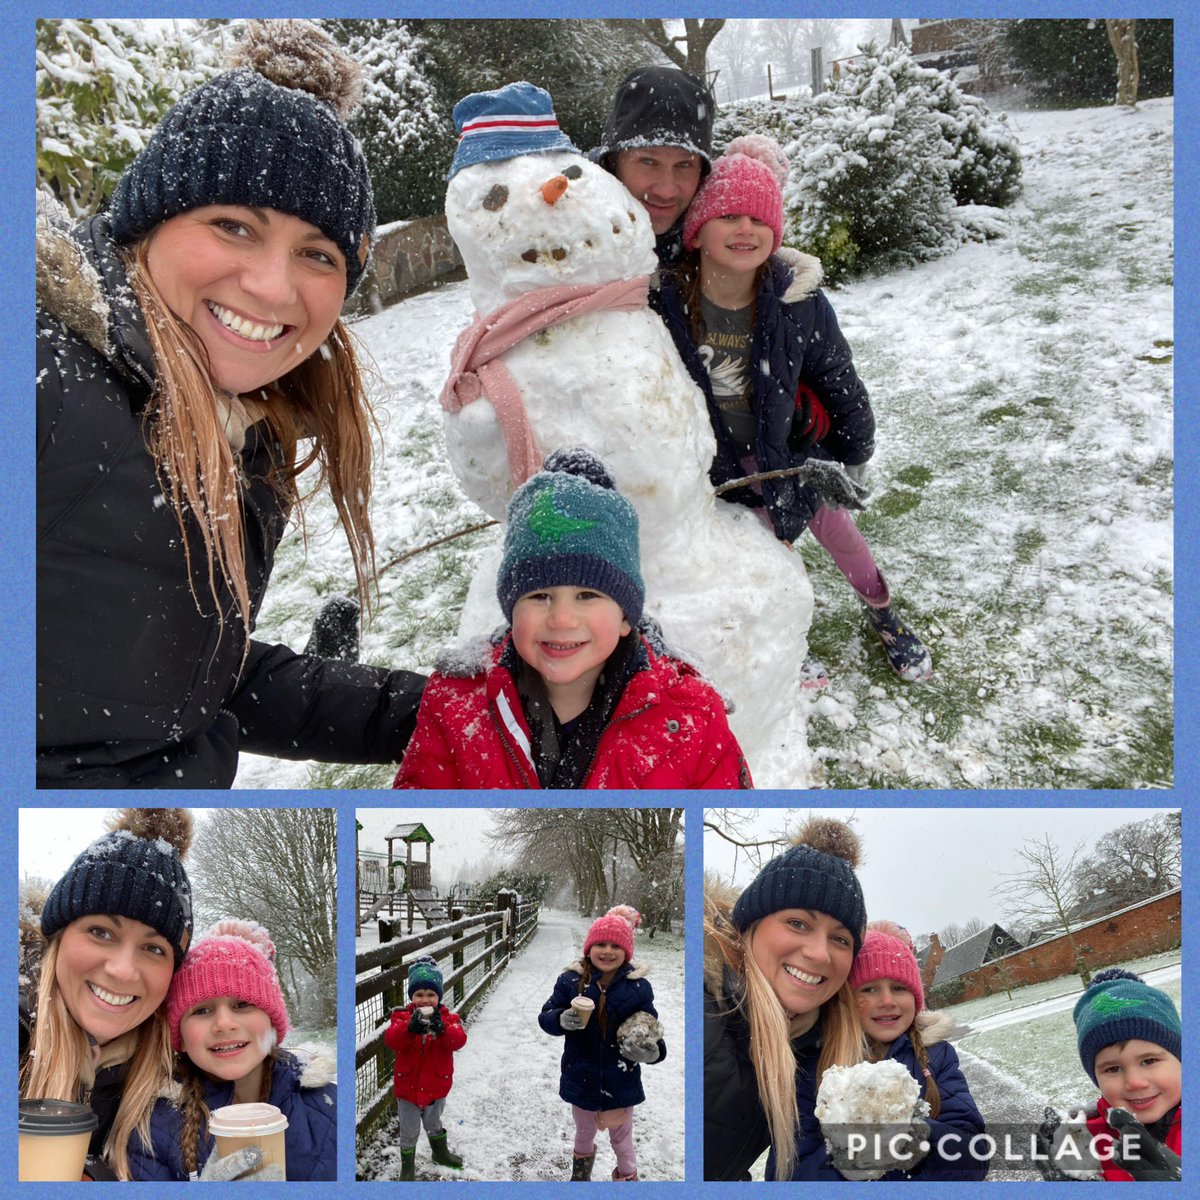 Fun in the snow!! #familytime #snowday